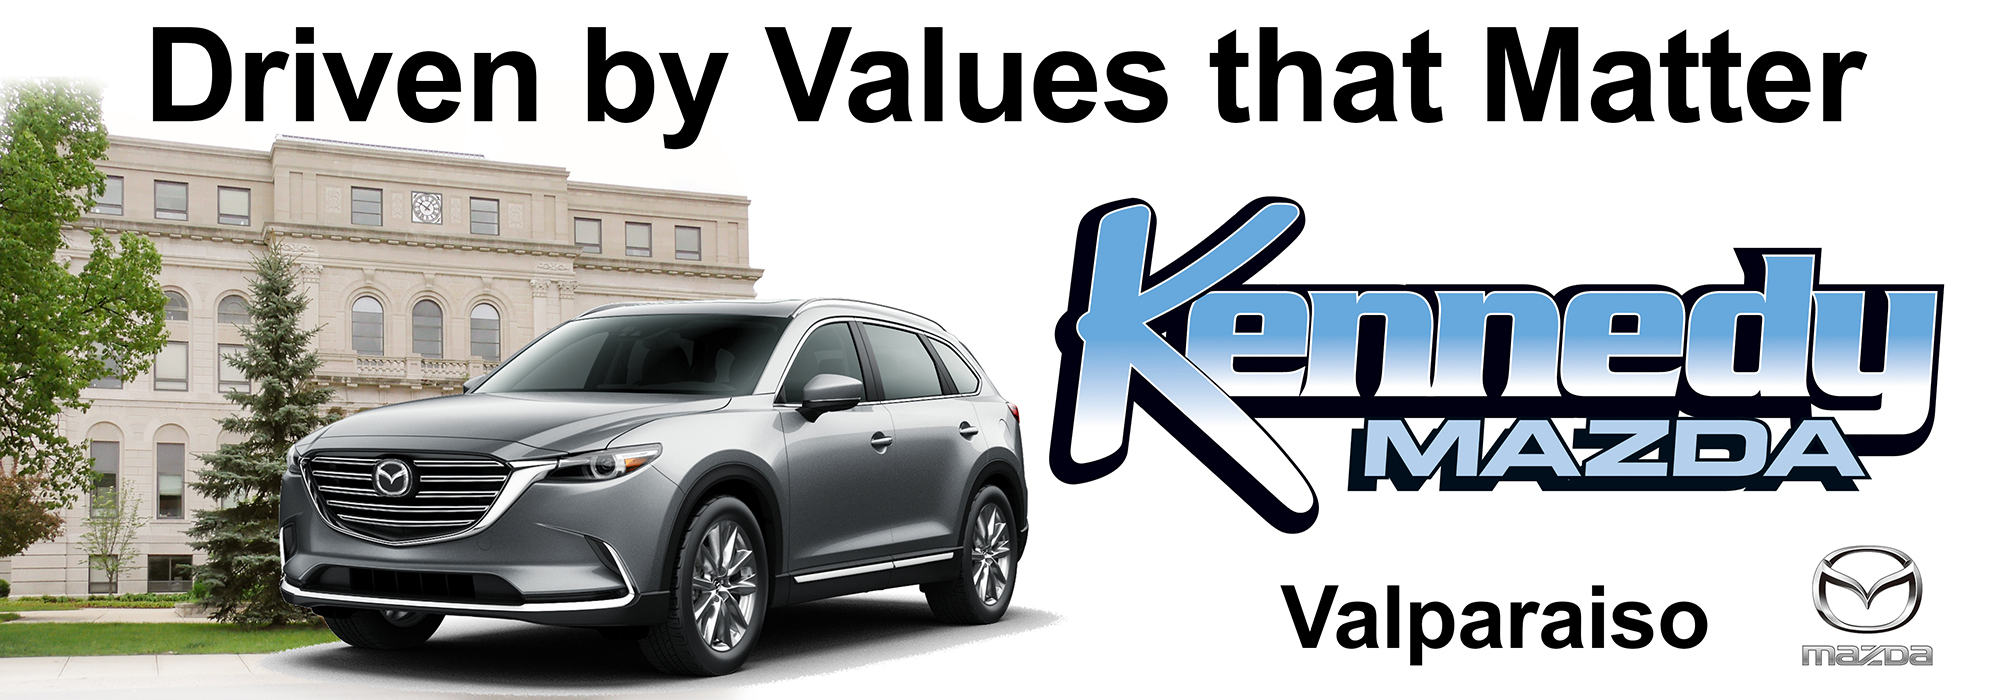 Driven by Values that Matter- Kennedy Mazda Valparaiso